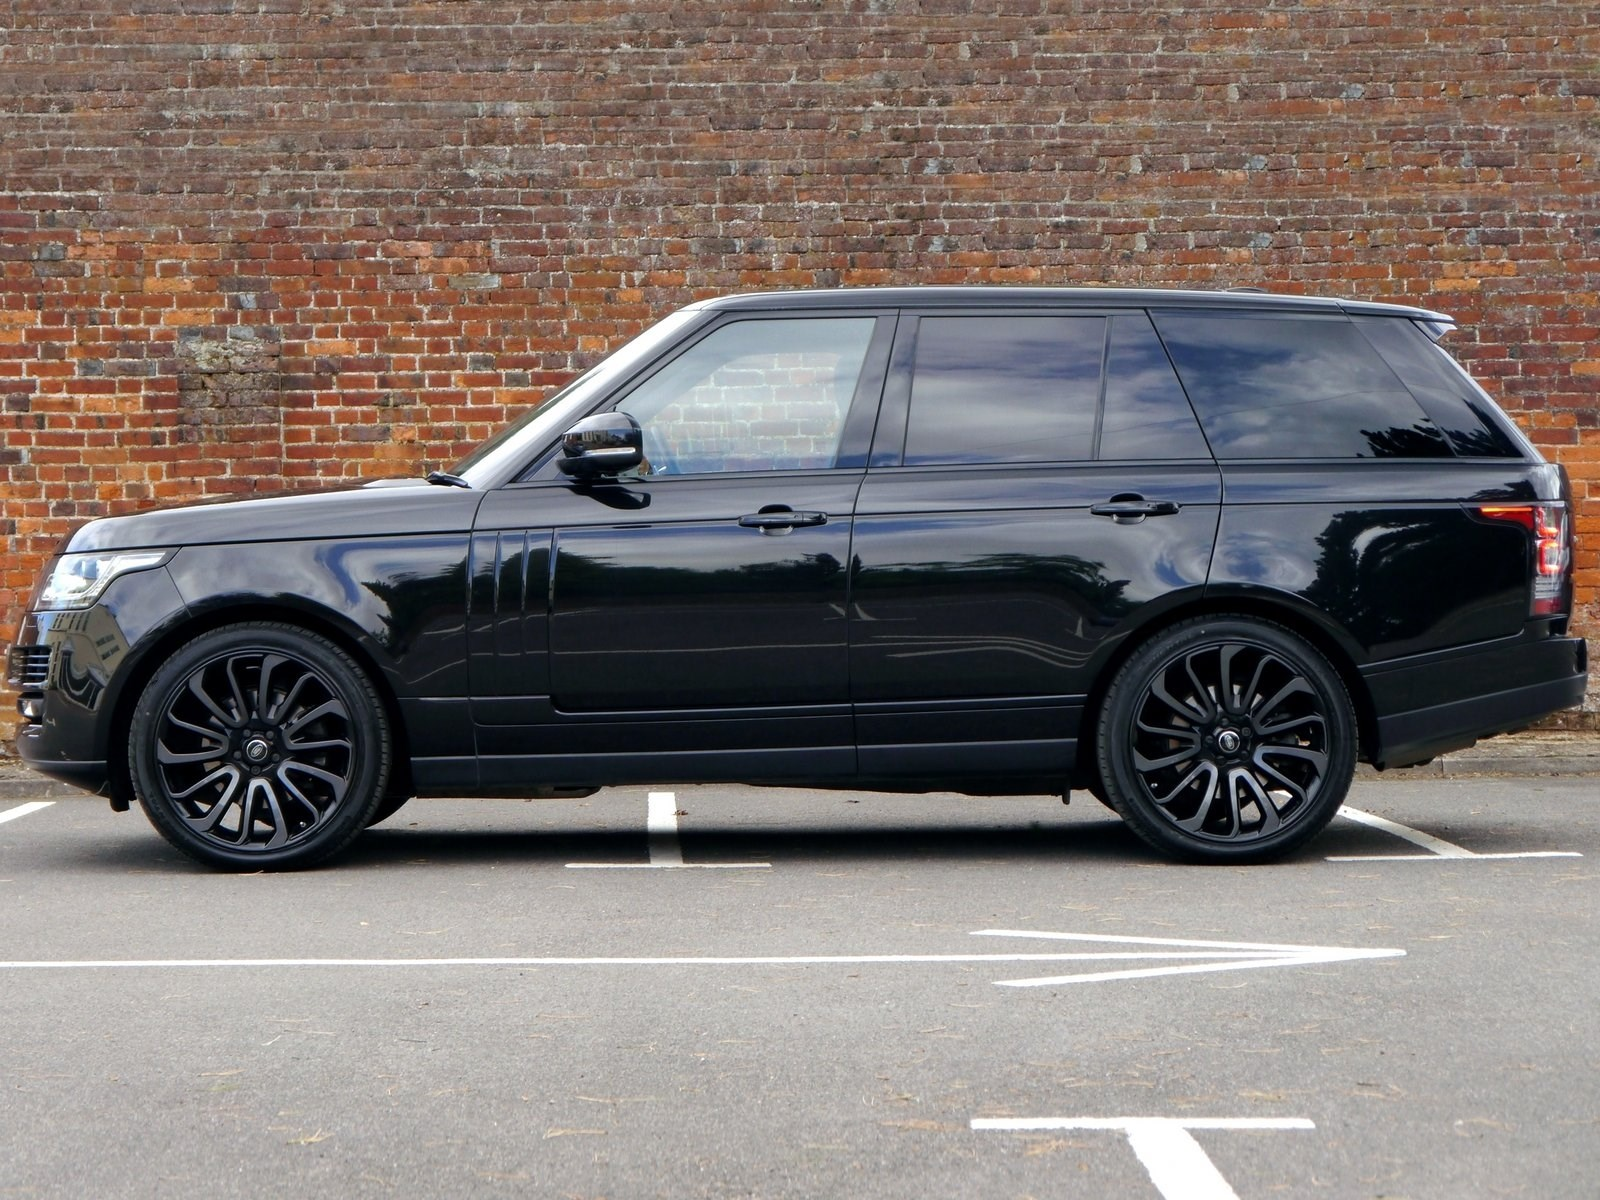 Range Rover Autobiography >> Land Rover Range Rover Autobiography 3.0 SDV6 - Black Design Package - 22in alloy wheels - 1 ...